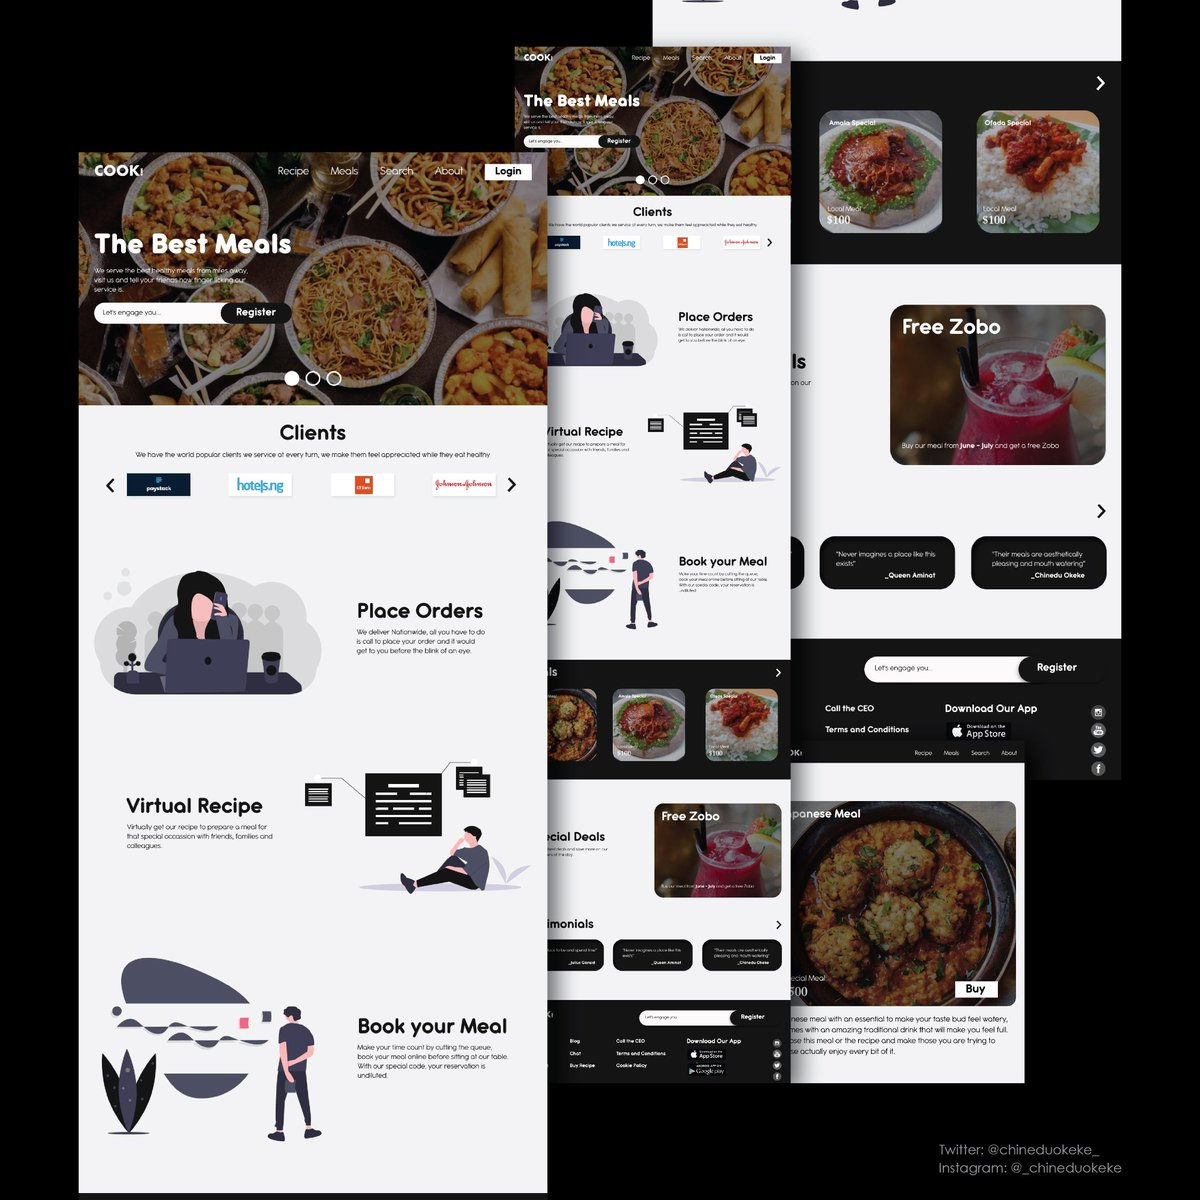 Had a good time creating this.  #uxdesign #design #uiuxpic.twitter.com/GboPIkGz7a